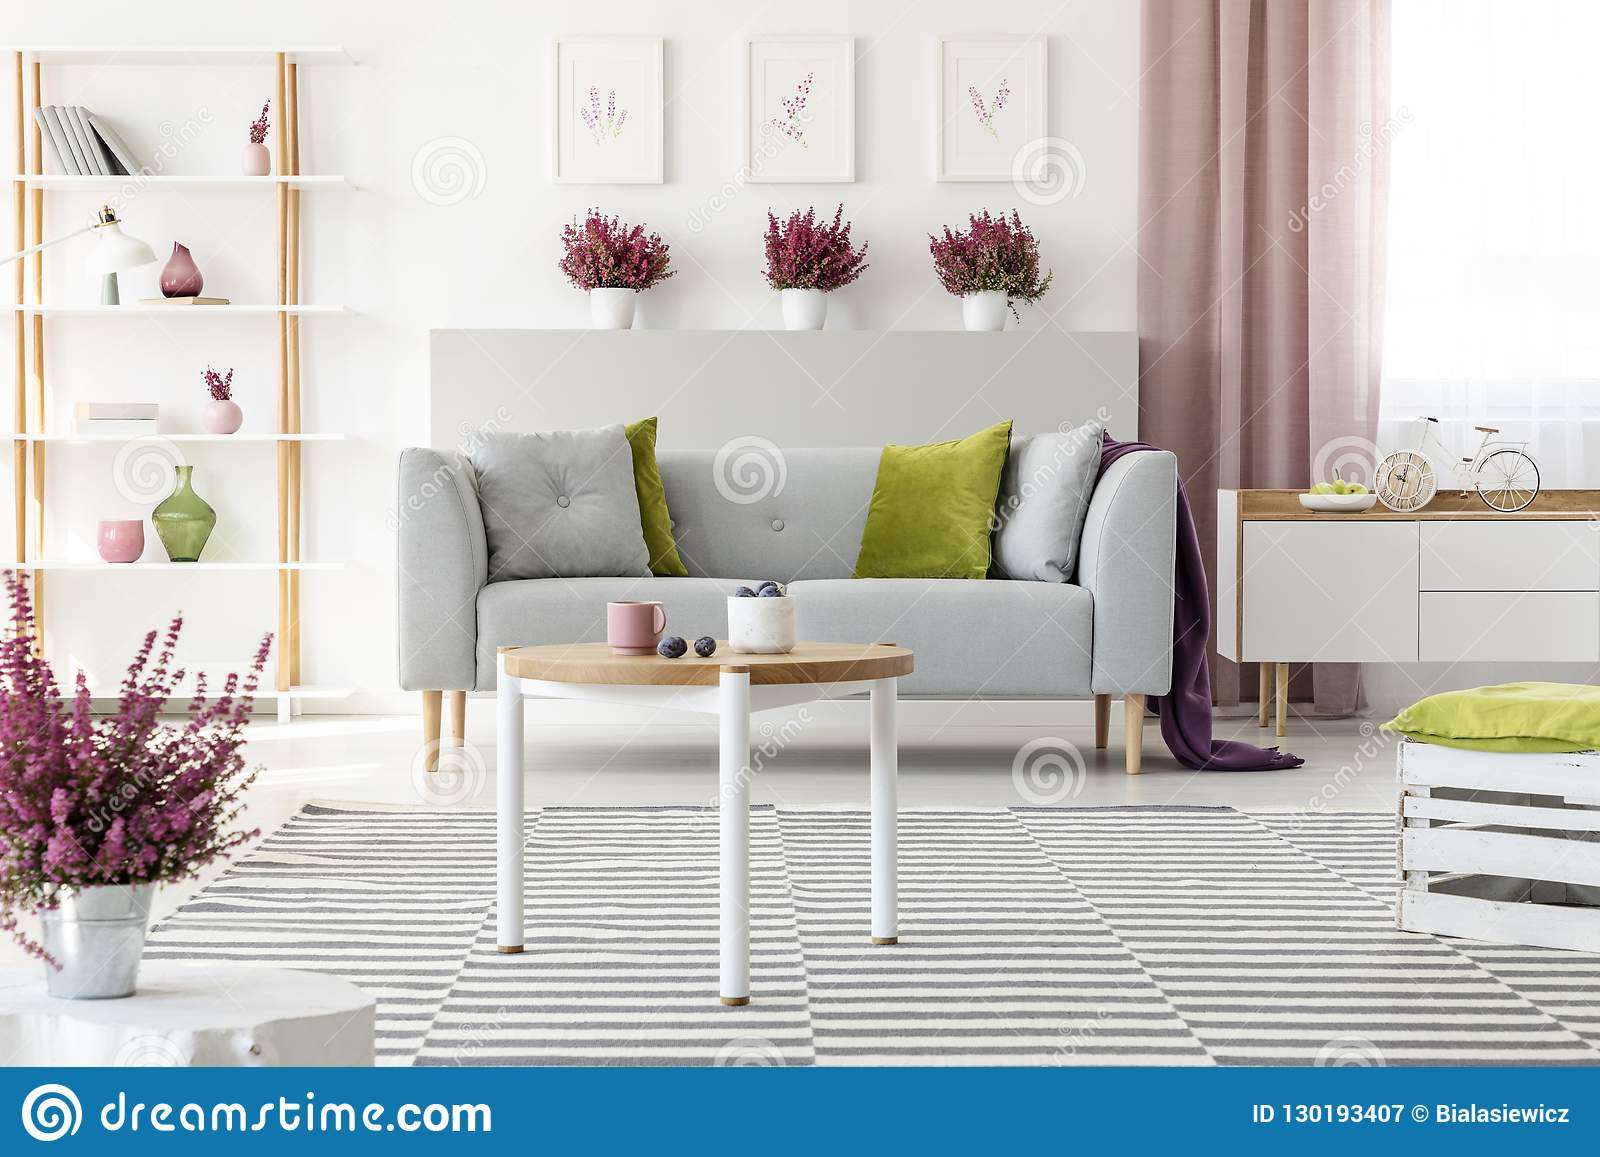 Elegant living room with white furniture, stylish wooden coffee table, patterned rug, grey couch with pillows and heather